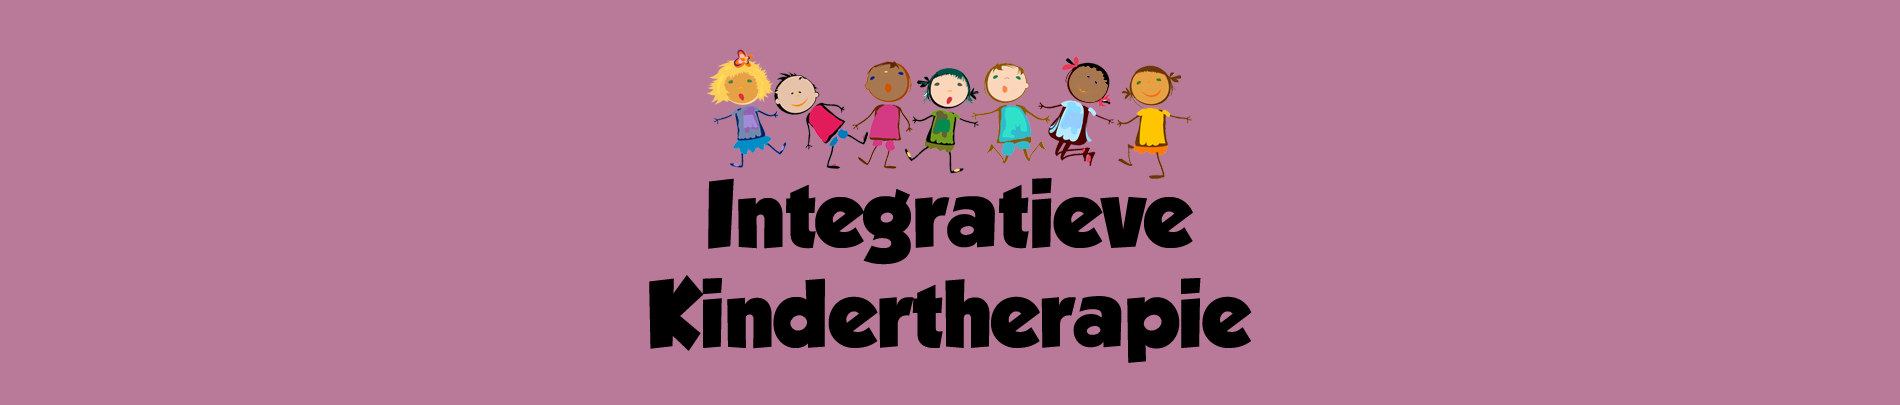 Integratieve Kindertherapie